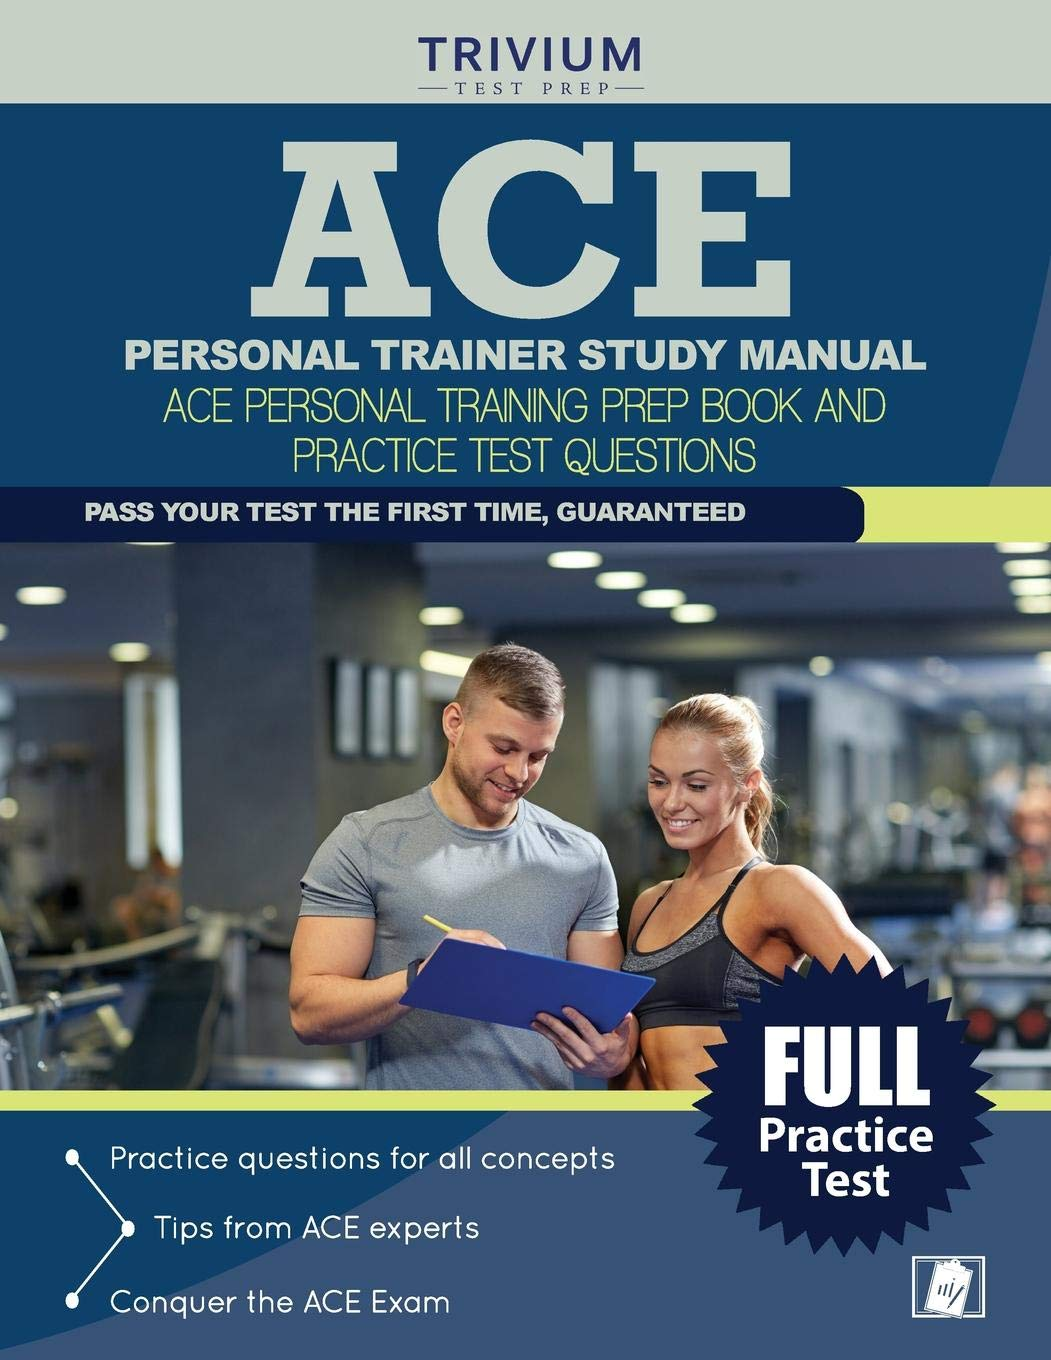 ACE Personal Trainer Study Manual: ACE Personal Training Prep Book and Practice  Test Questions Paperback – Dec 23 2015